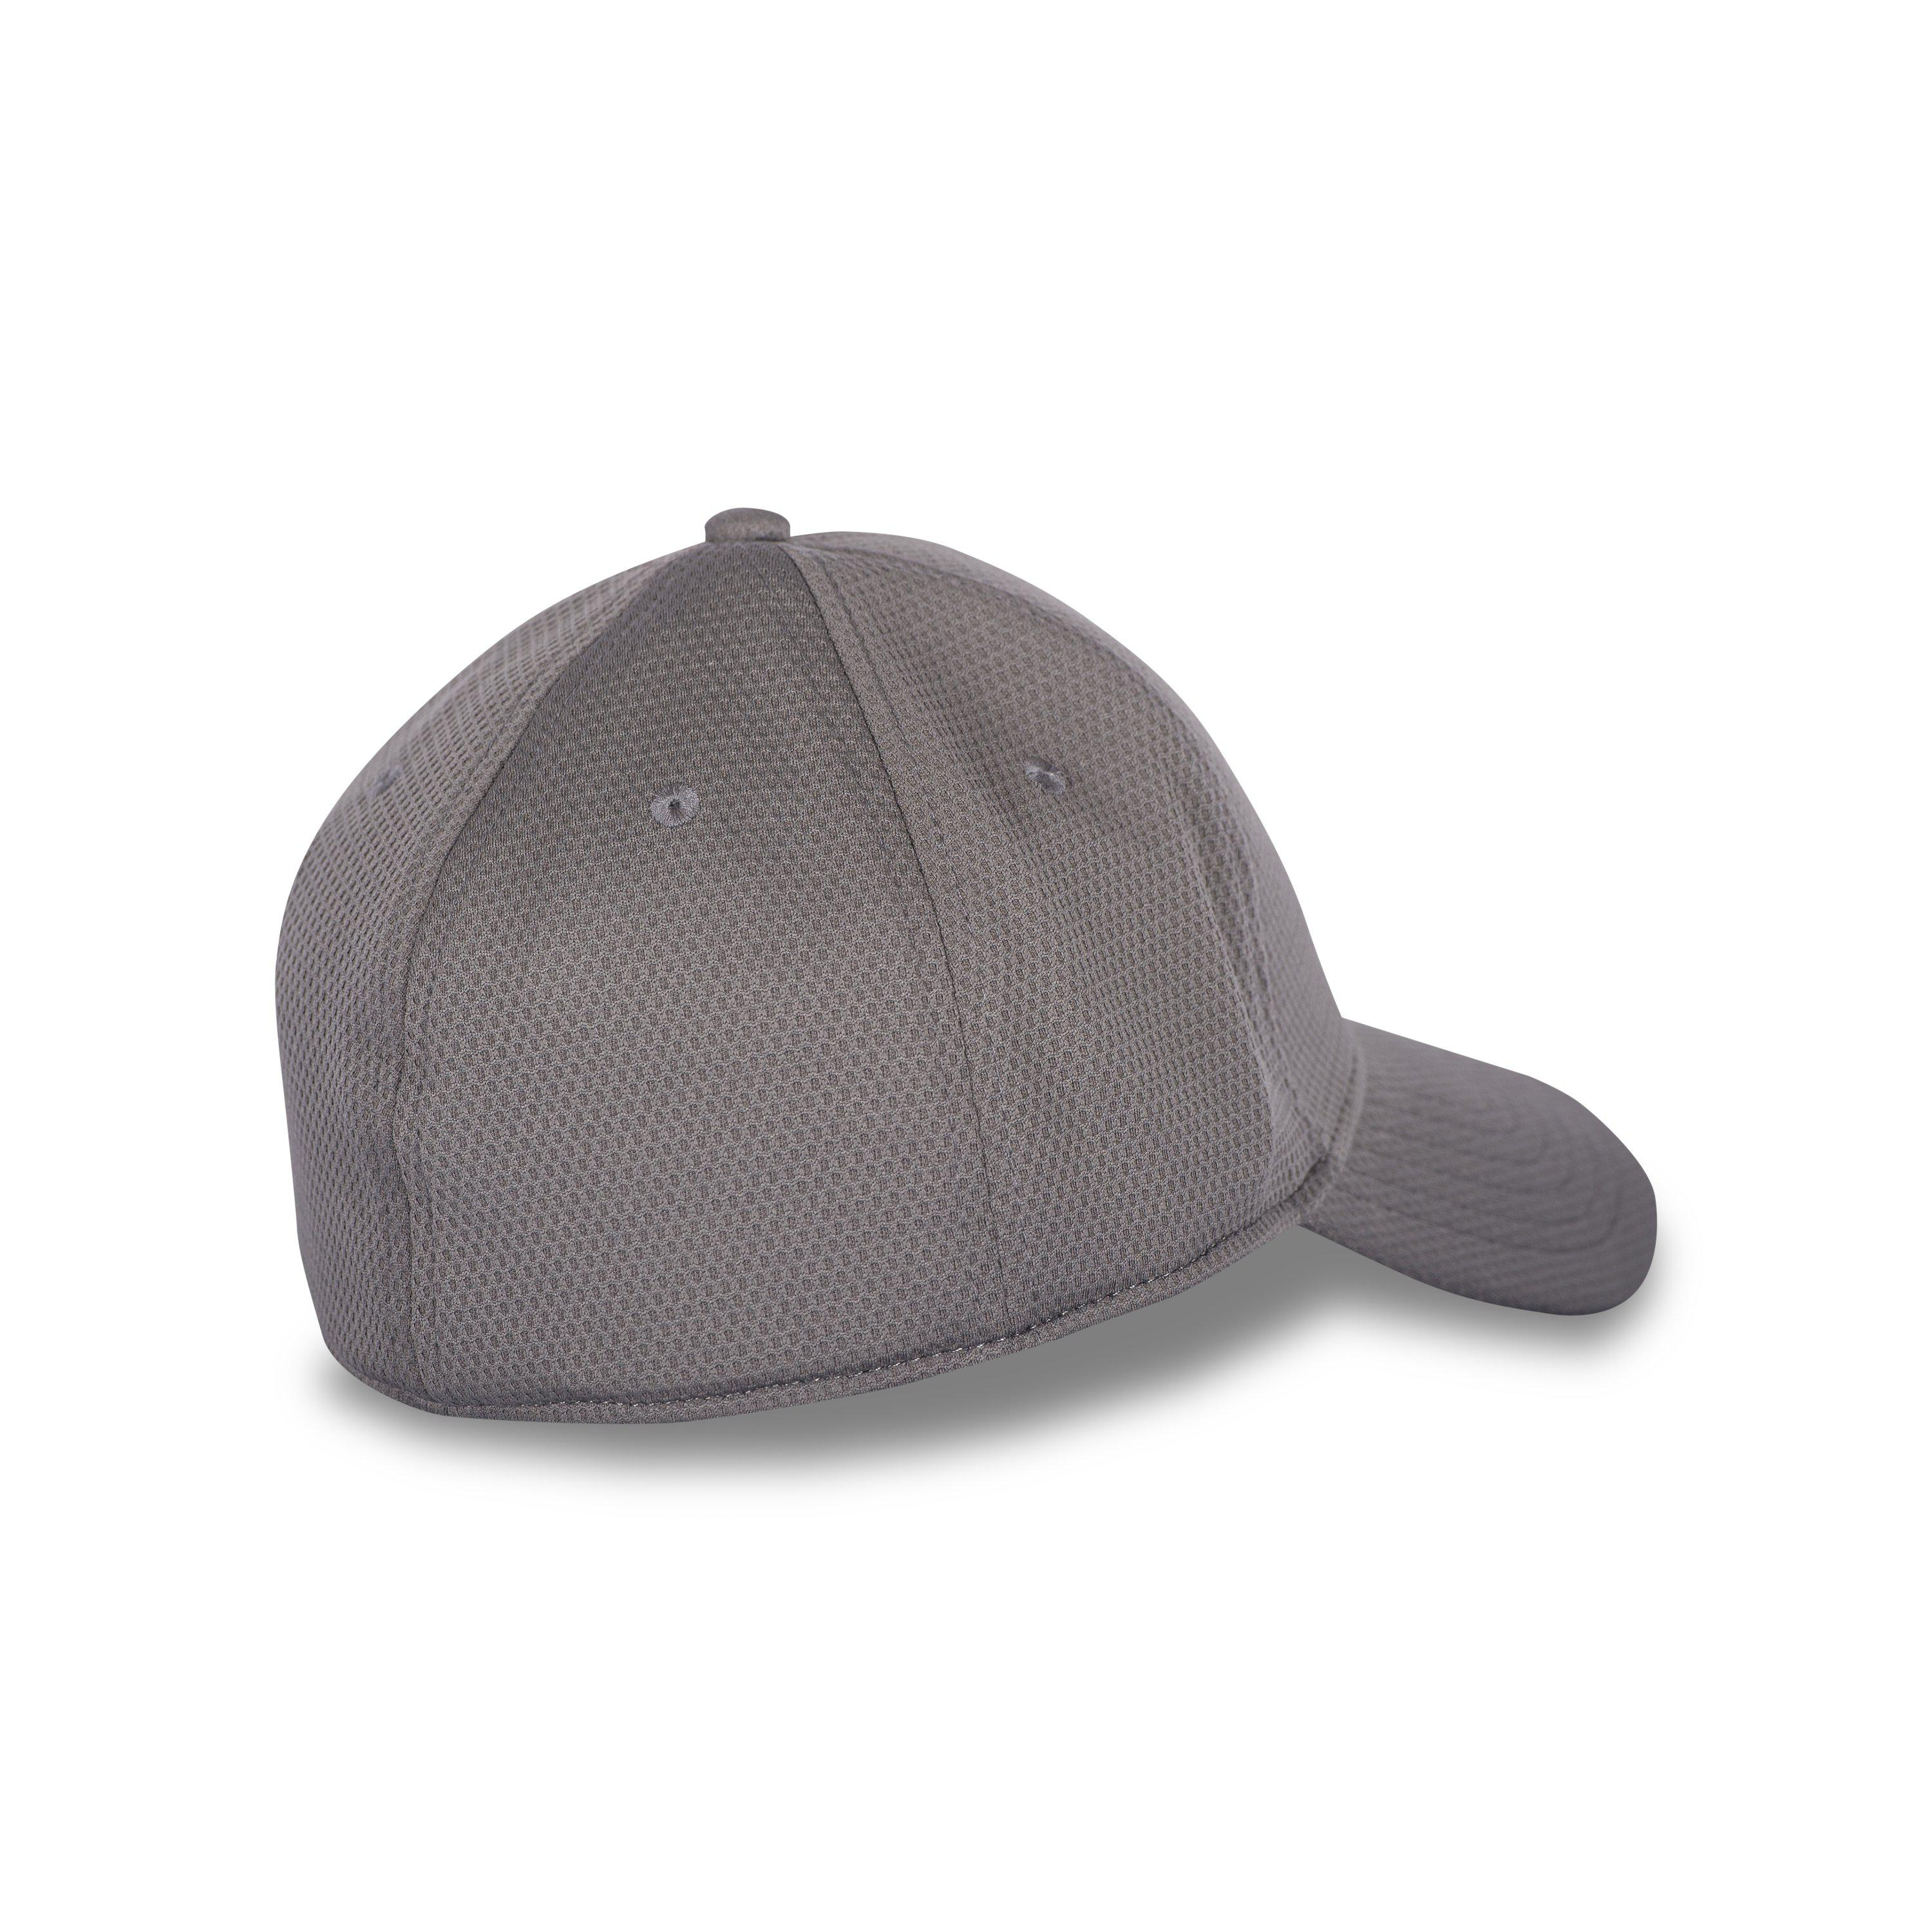 Lyst - Under Armour Men s Ua Curved Brim Stretch Fit Cap in Gray for Men d5a9827eac6